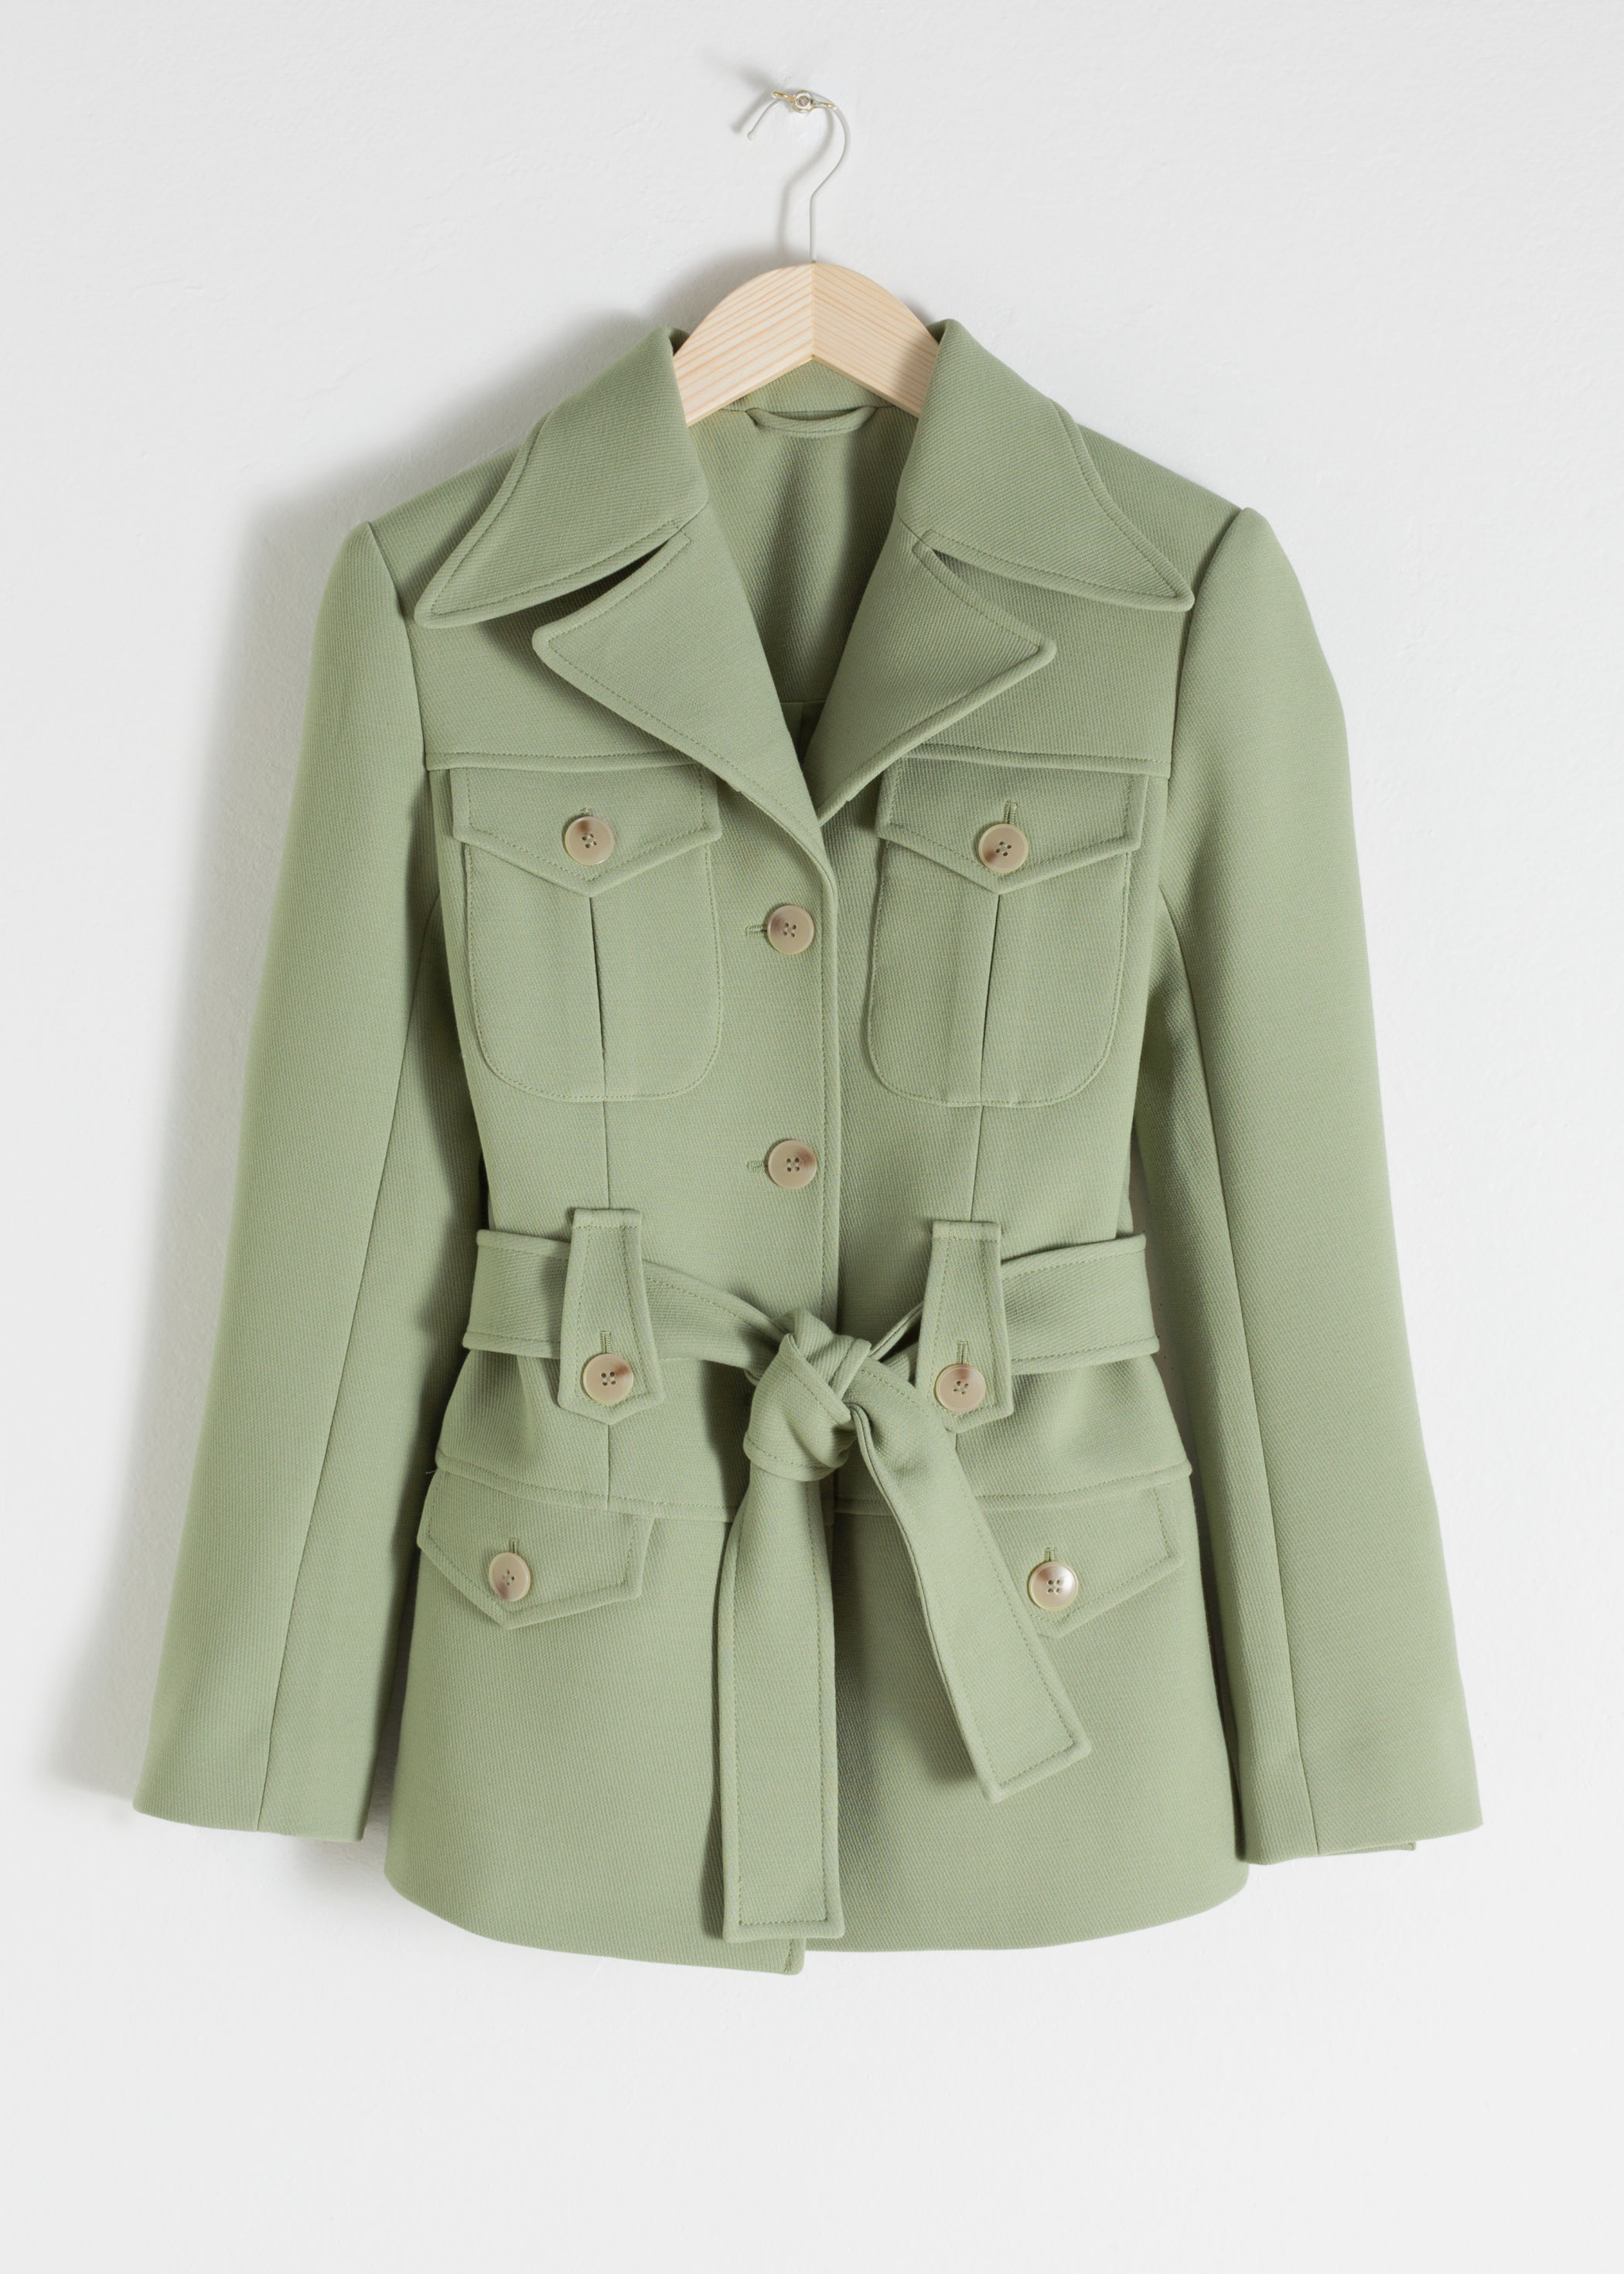 ROSE & IVY The Find | A Belted Workwear Jacket